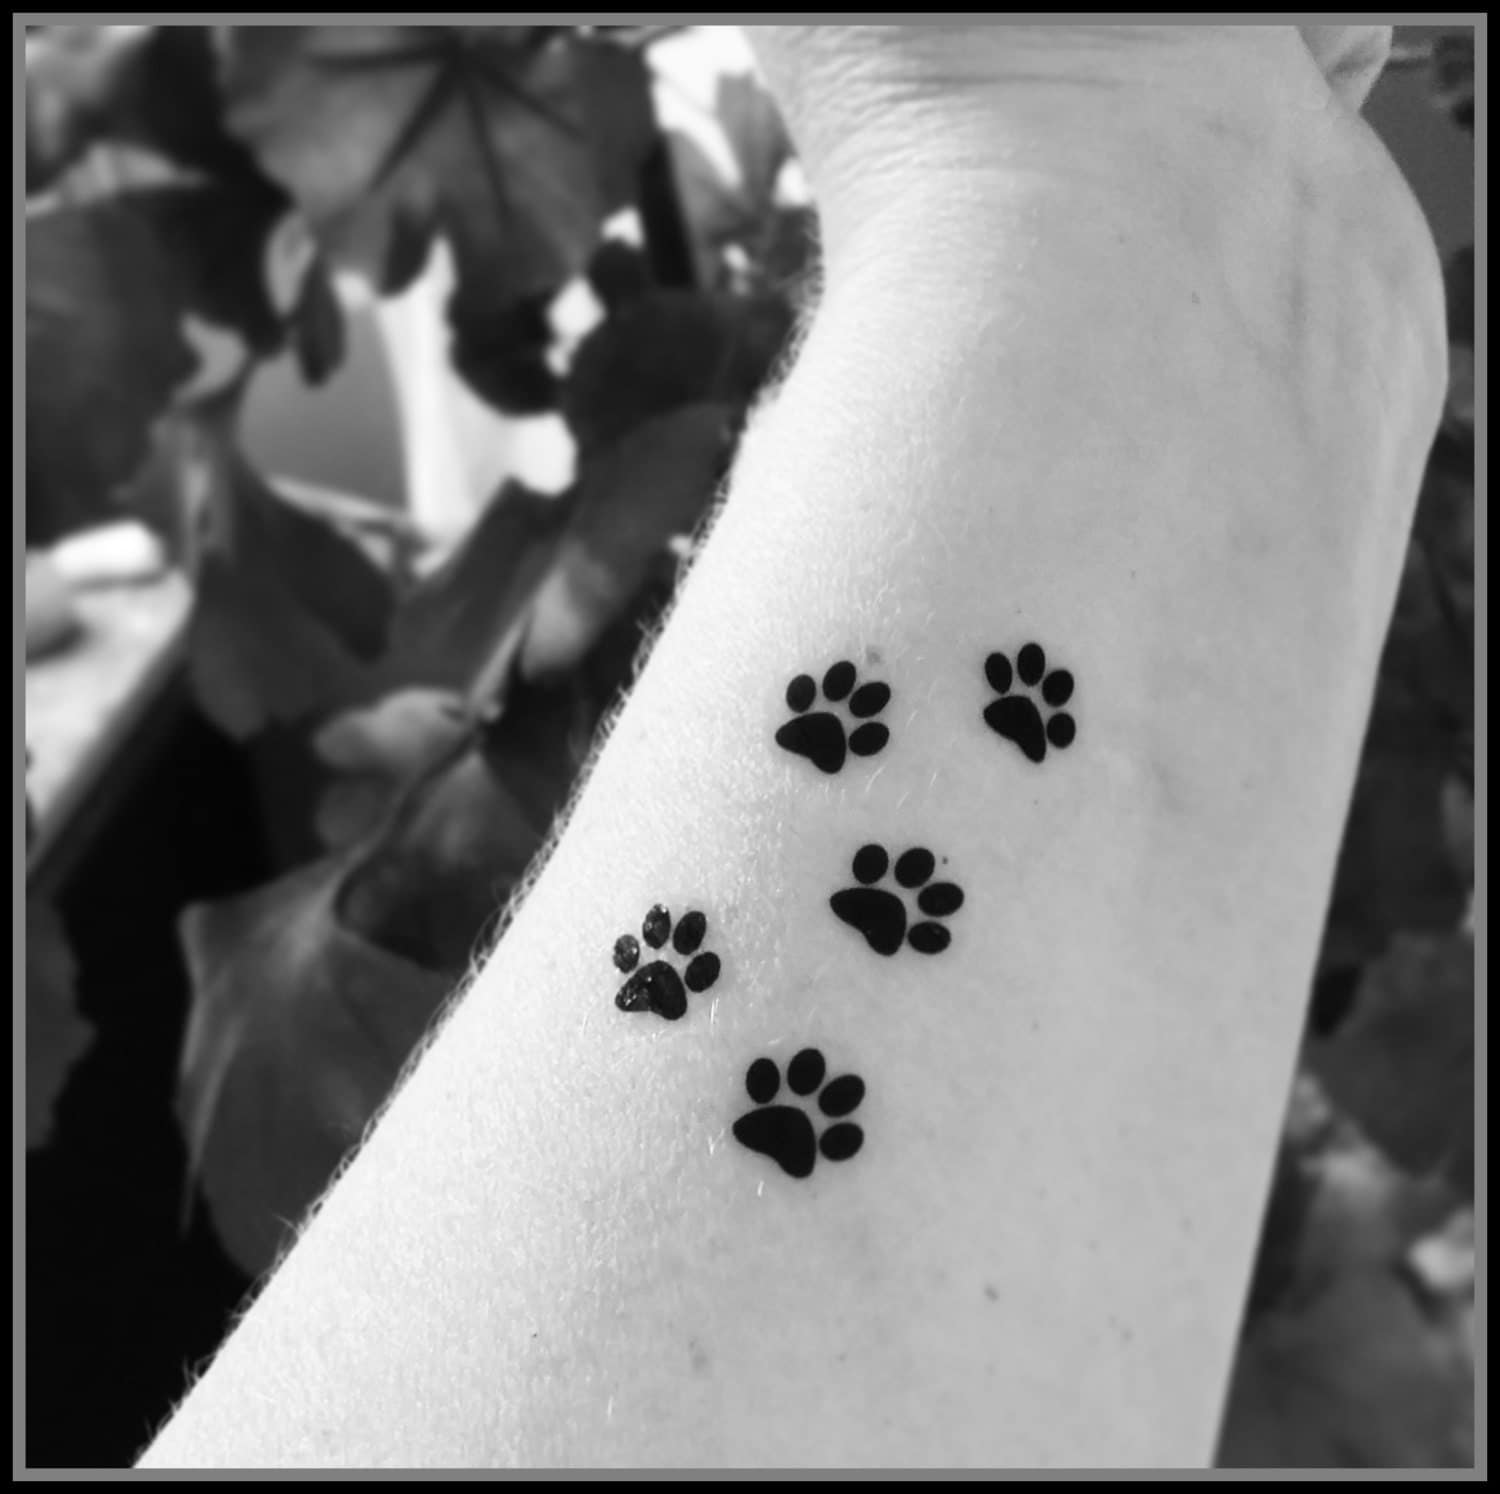 tiny paw prints set of 5 temporary tattoos fake tattoos animal